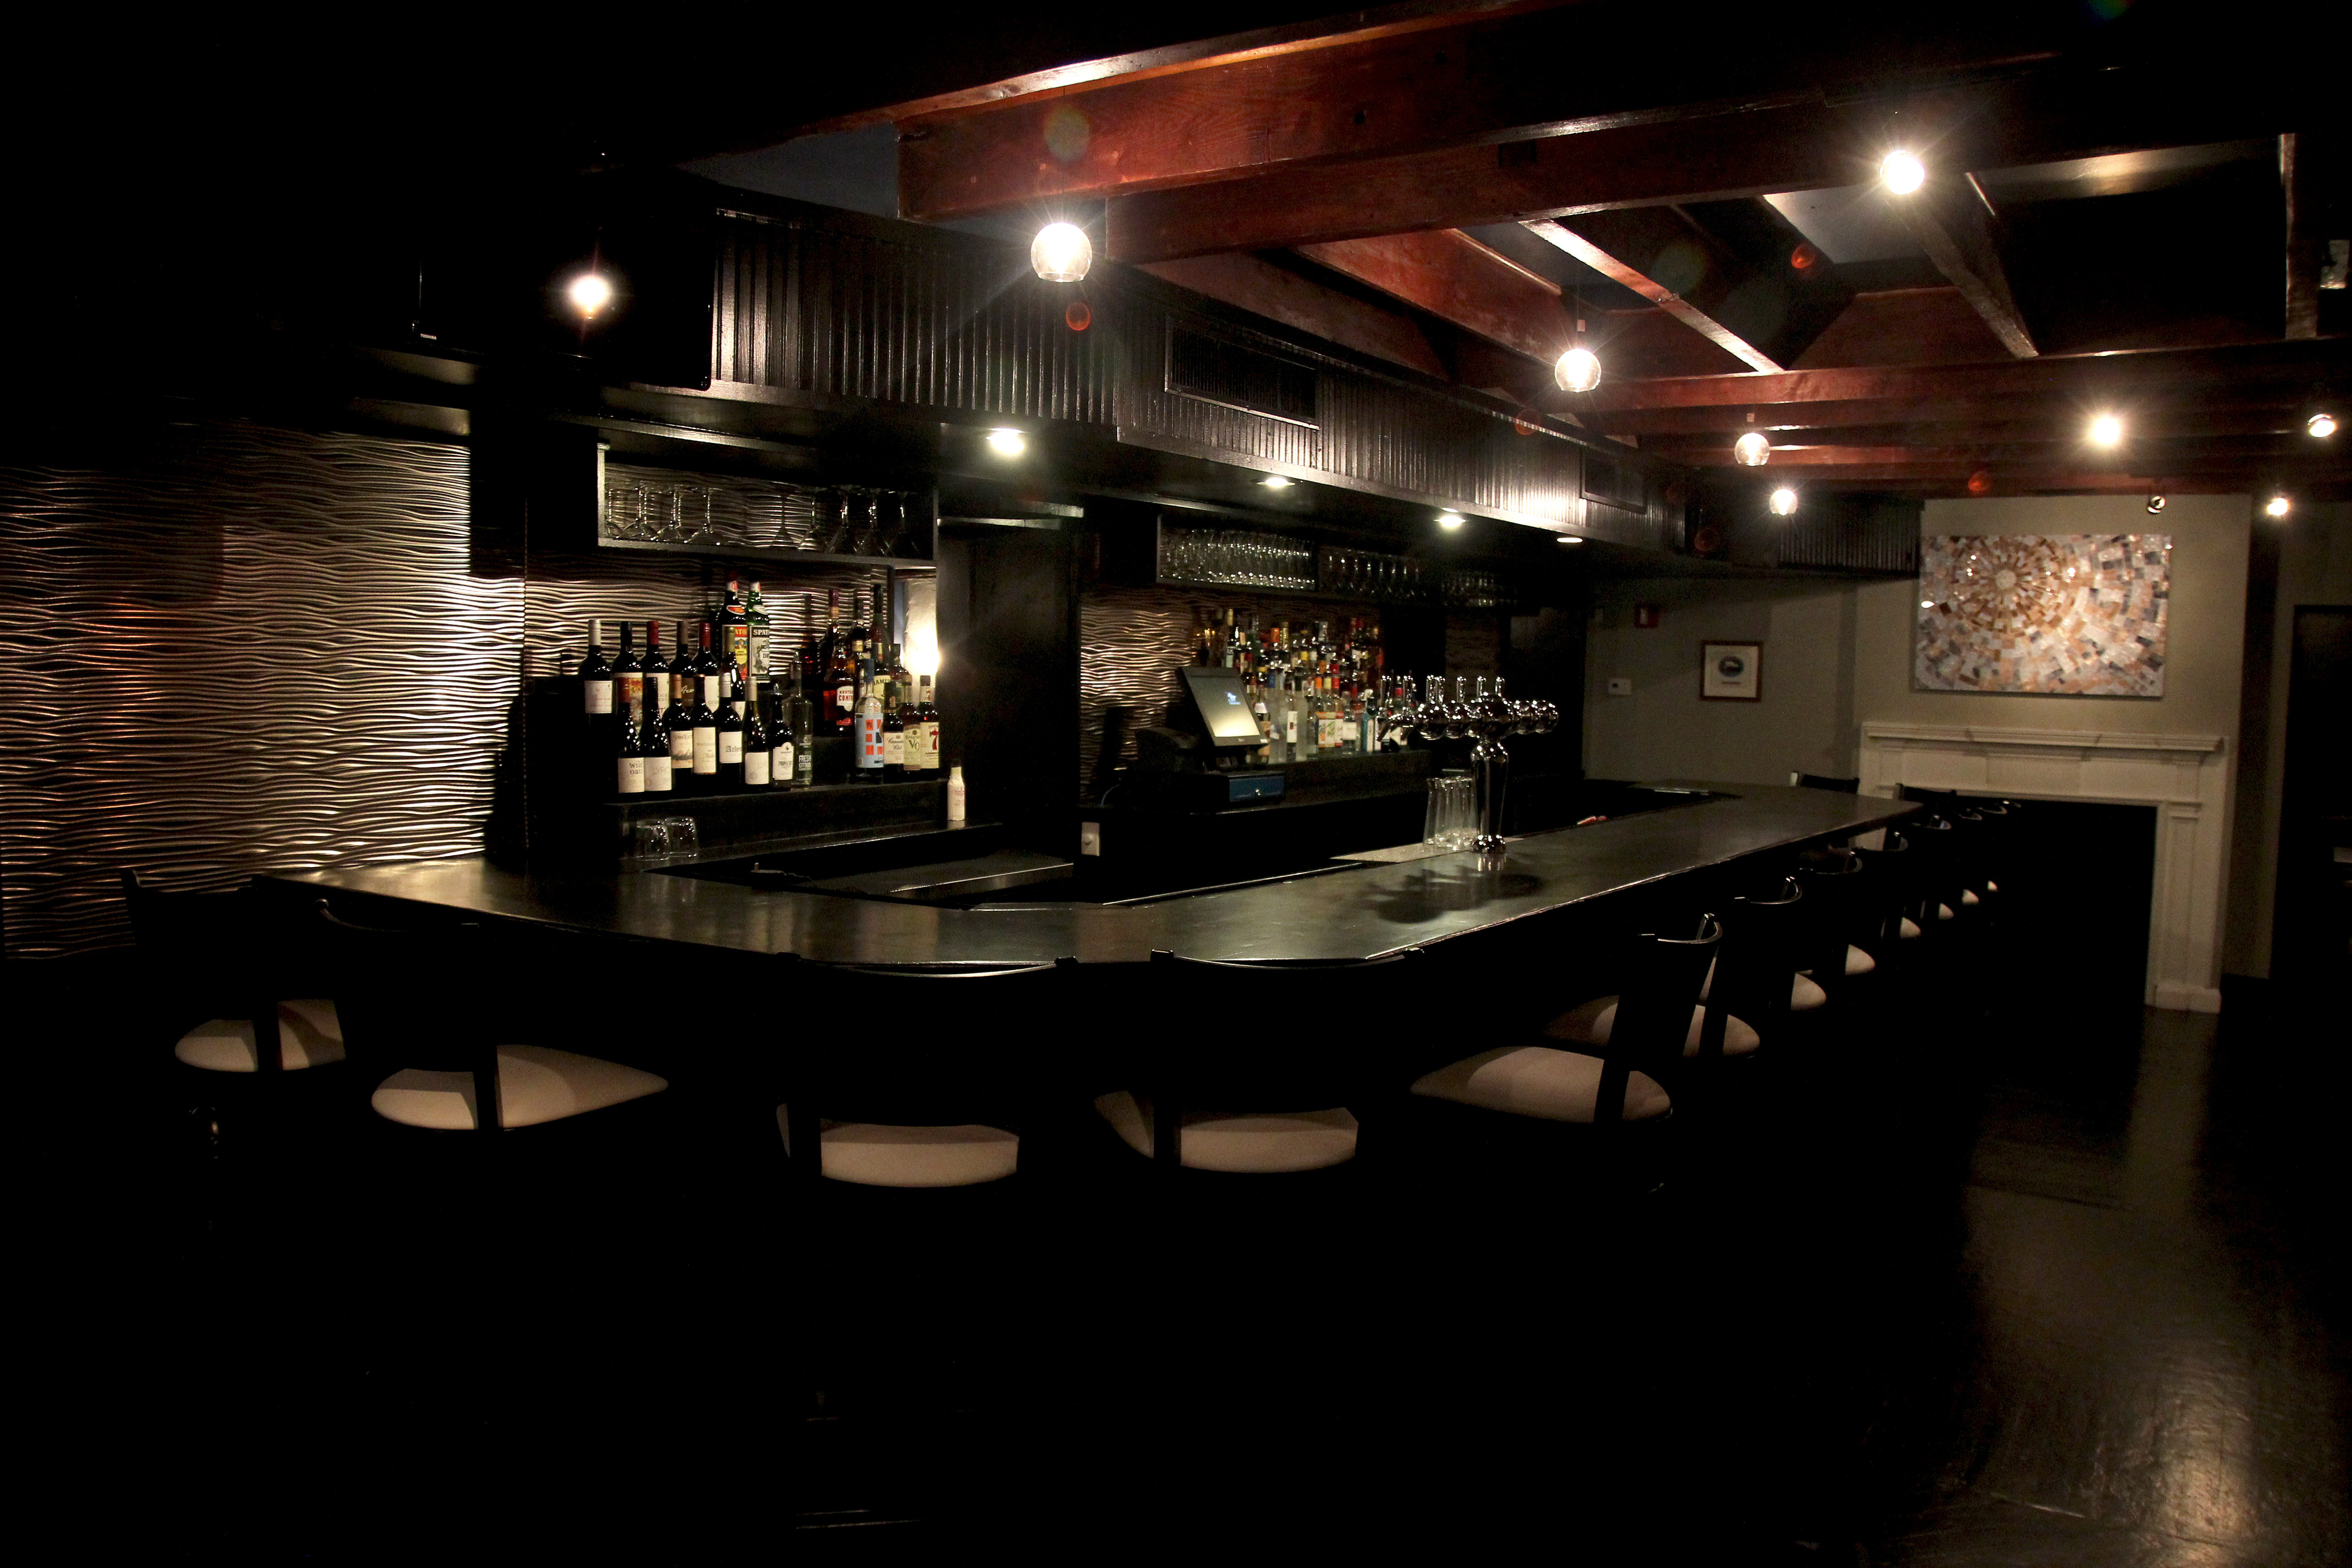 One bar at The General, 646 Germantown Pike, Lafayette Hill.